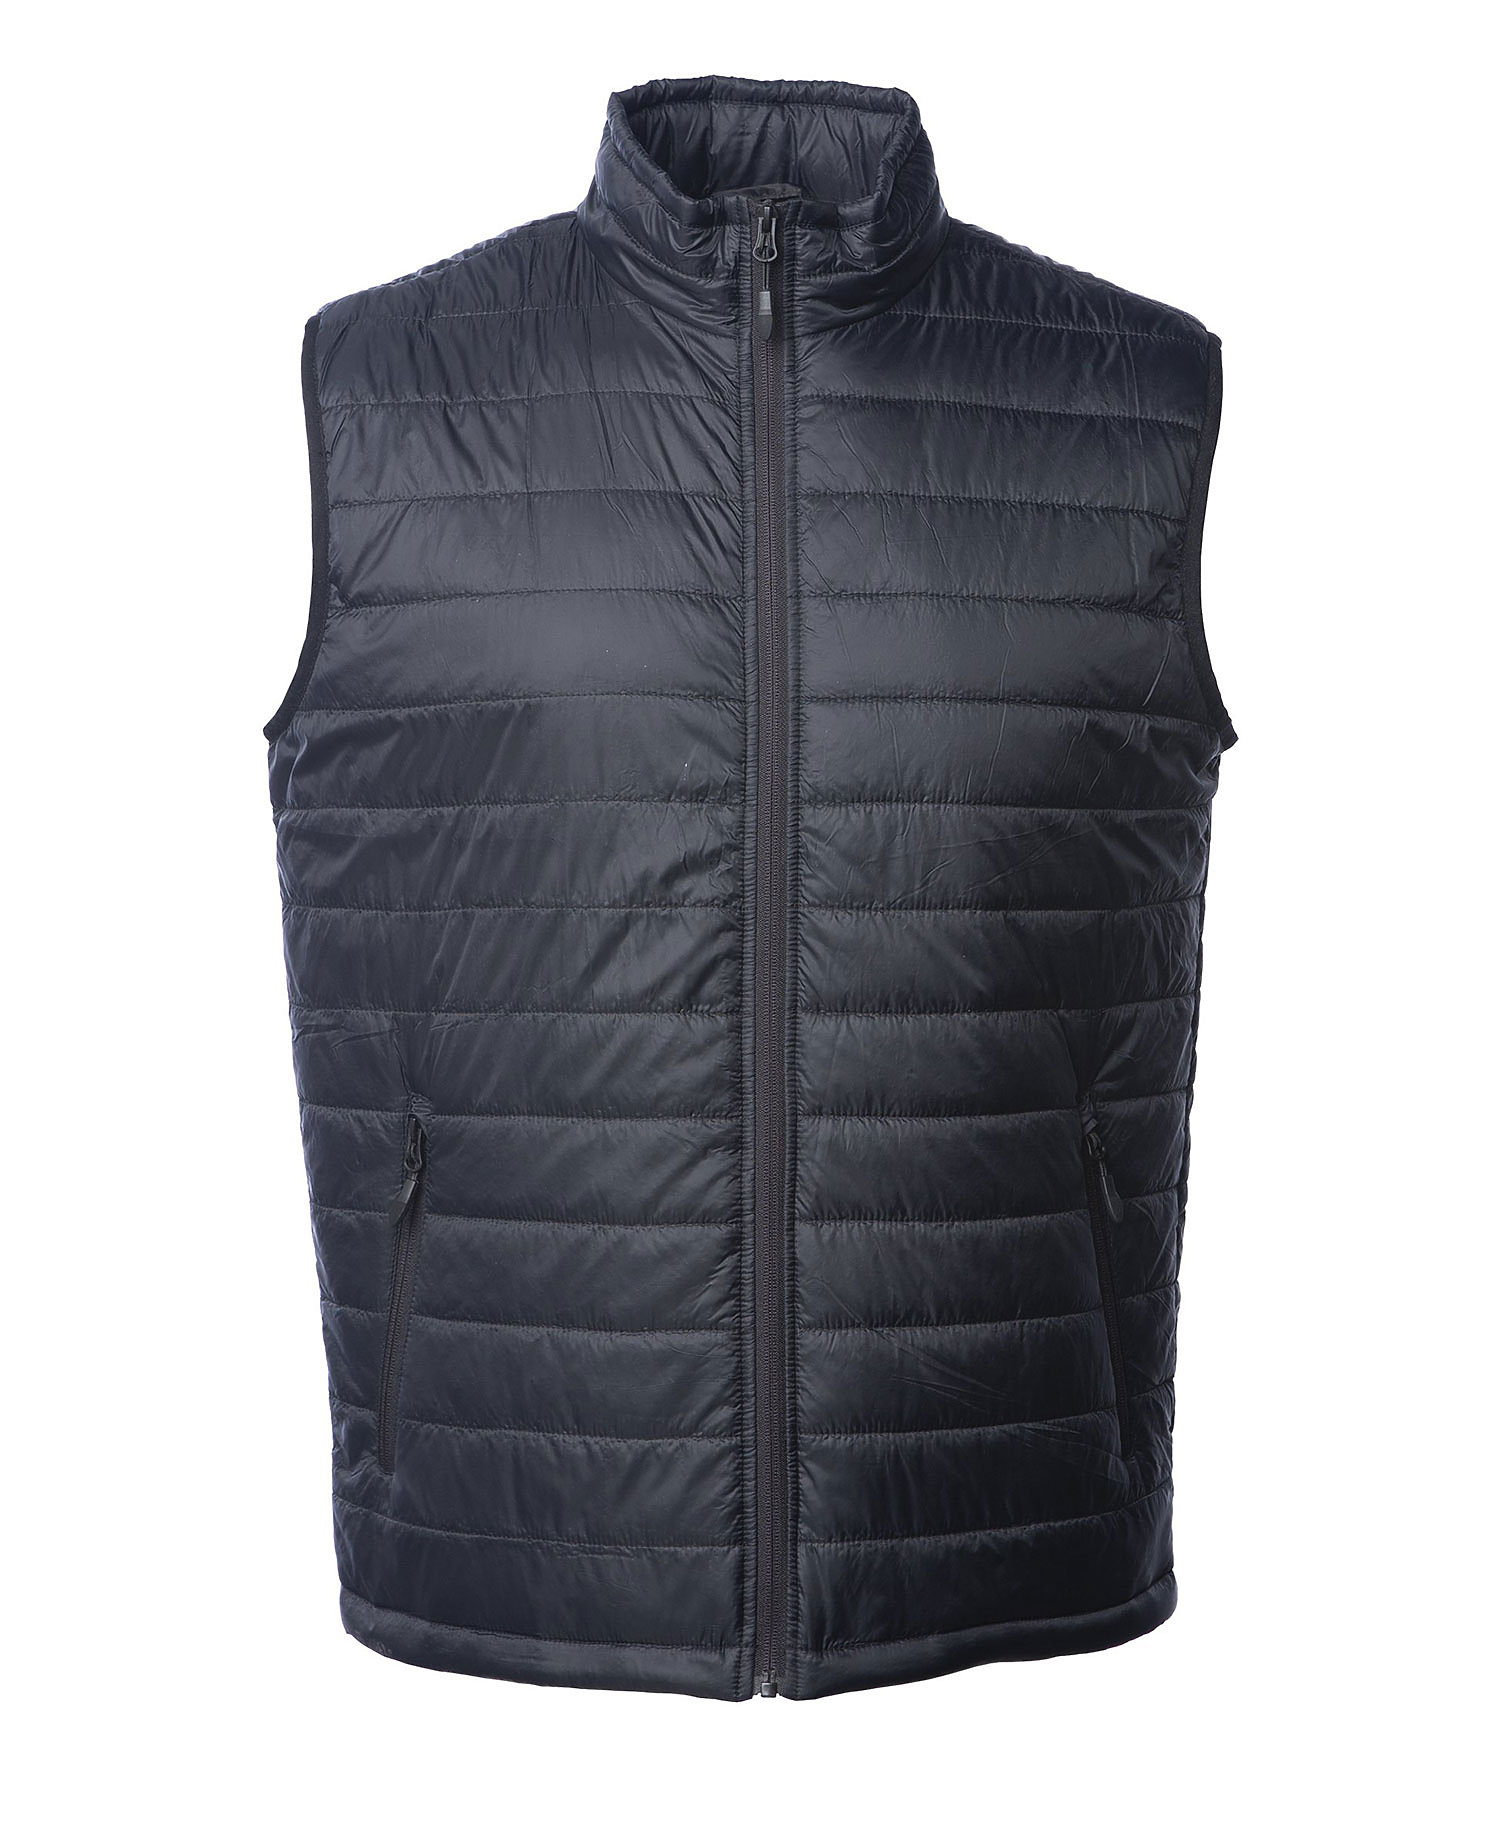 Independent Trading Co. EXP120PFV - Men's Puffer Vest